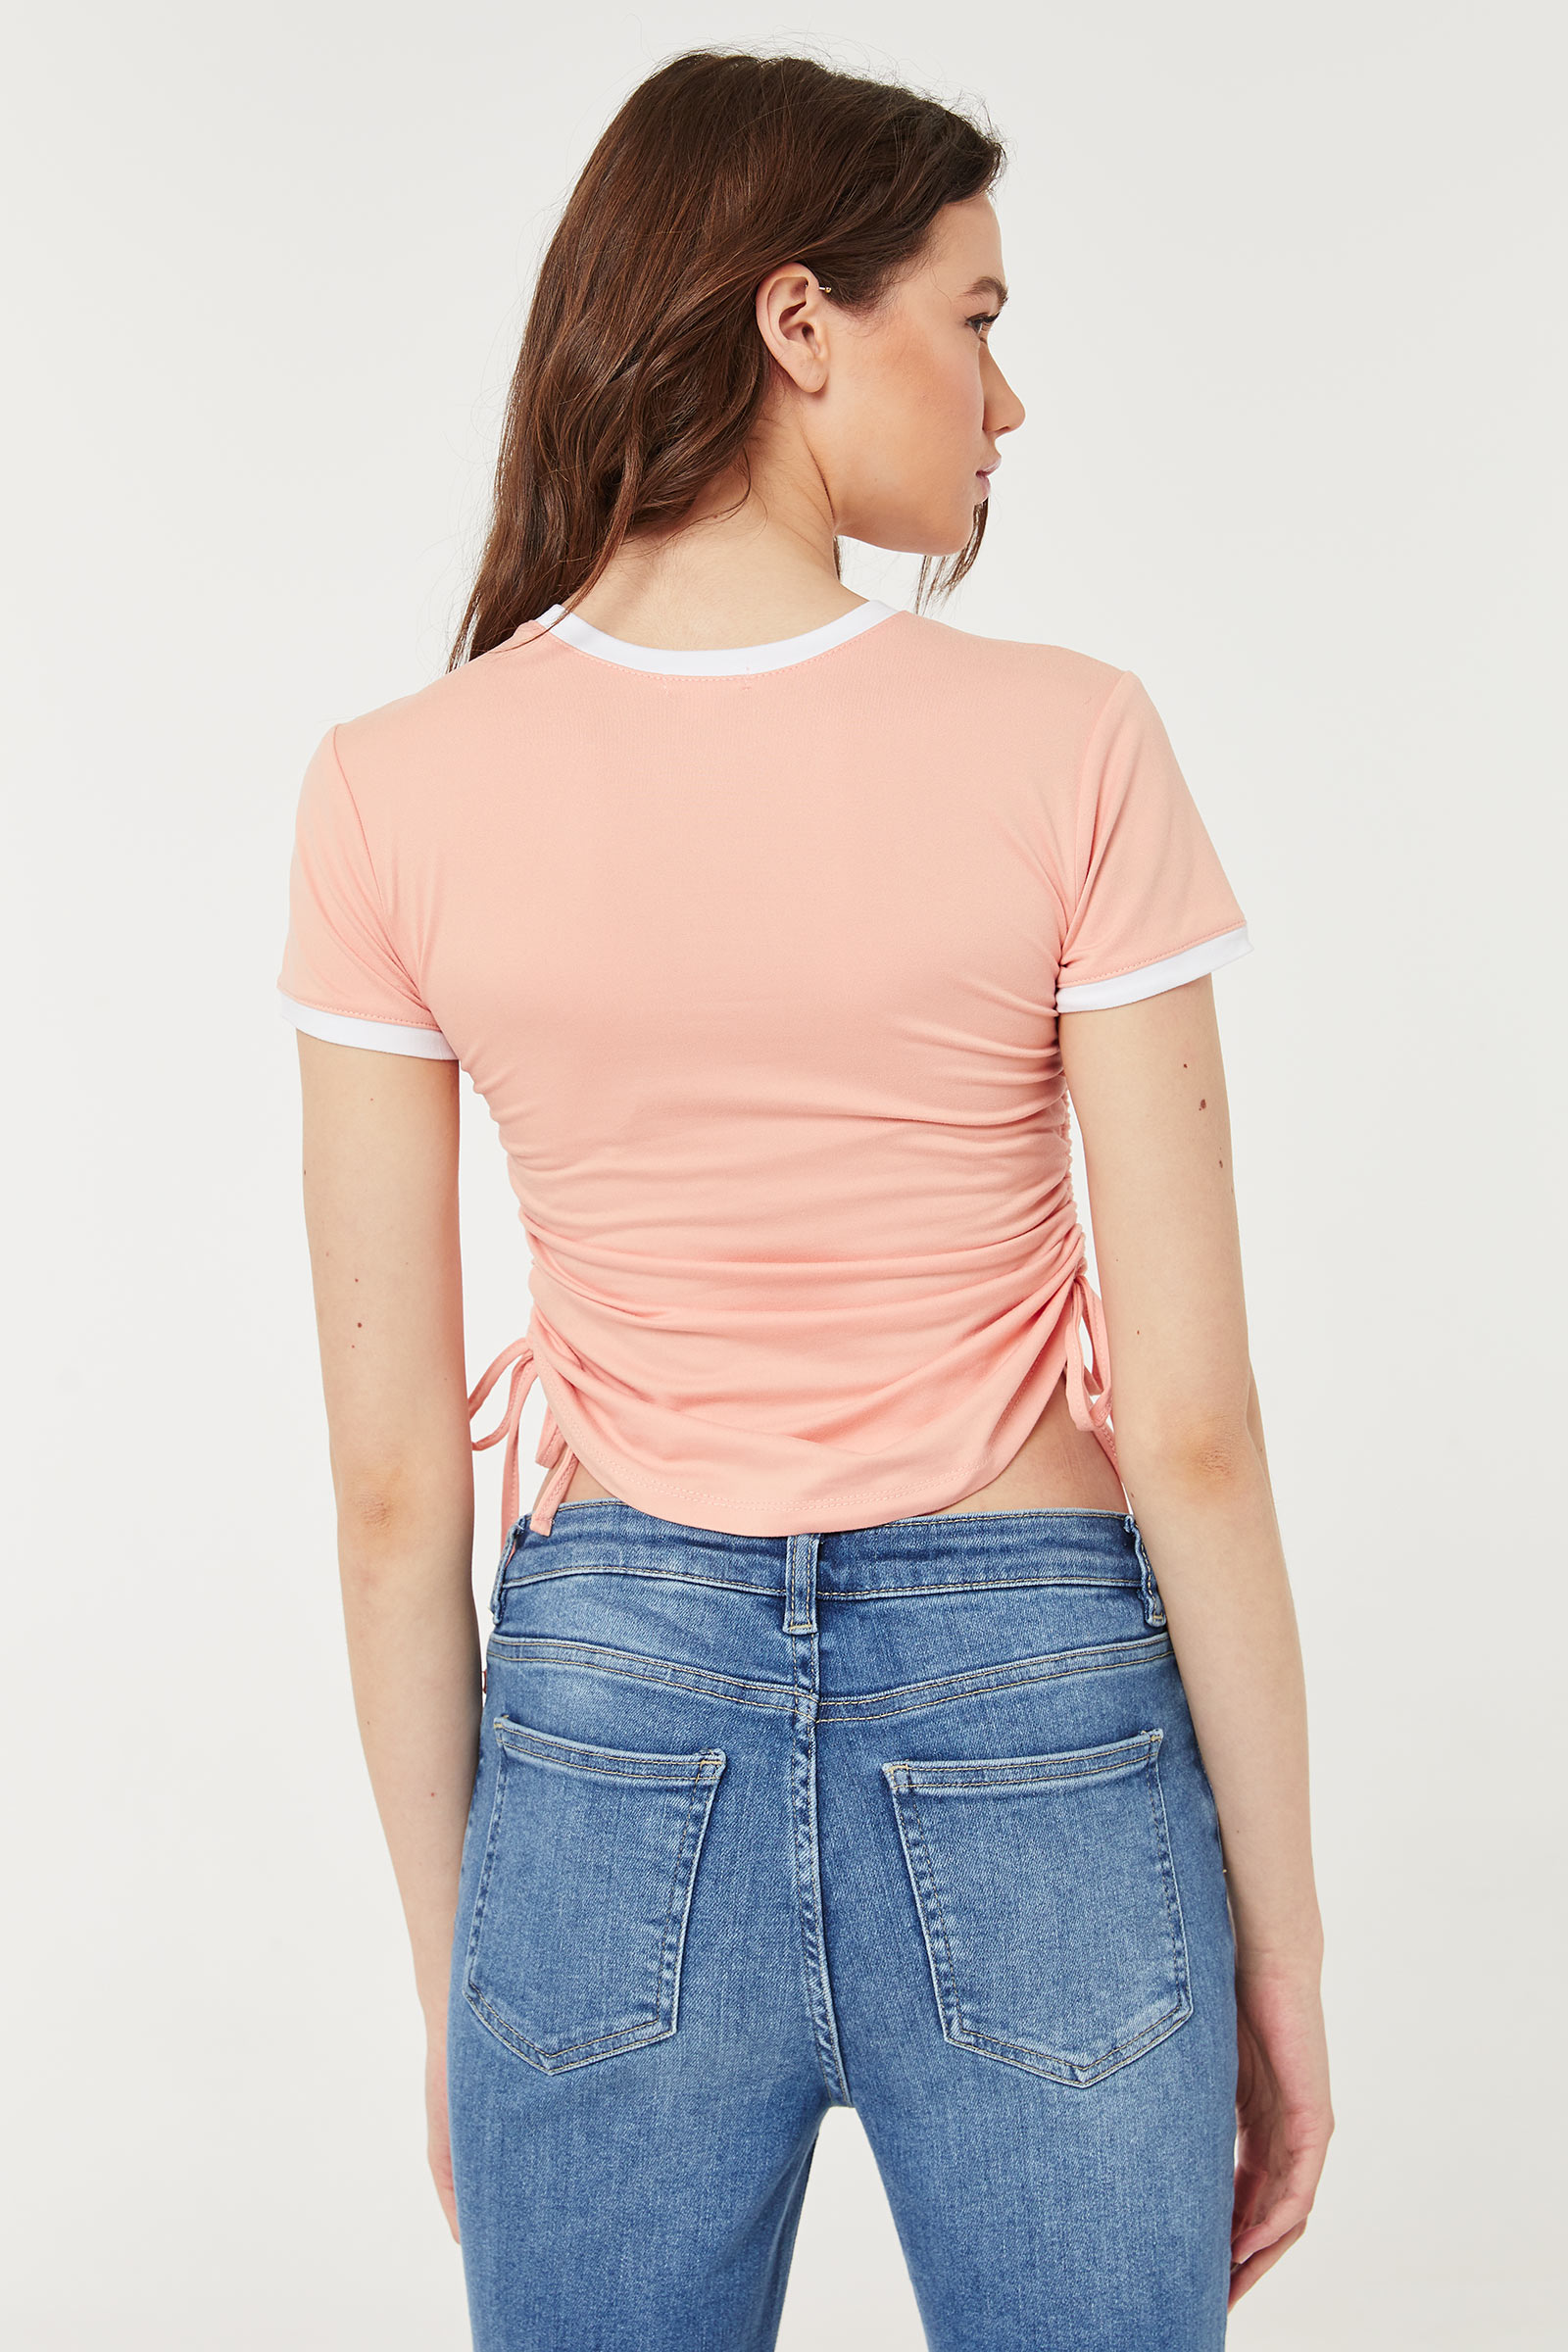 Heart T-shirt with Side Ruching